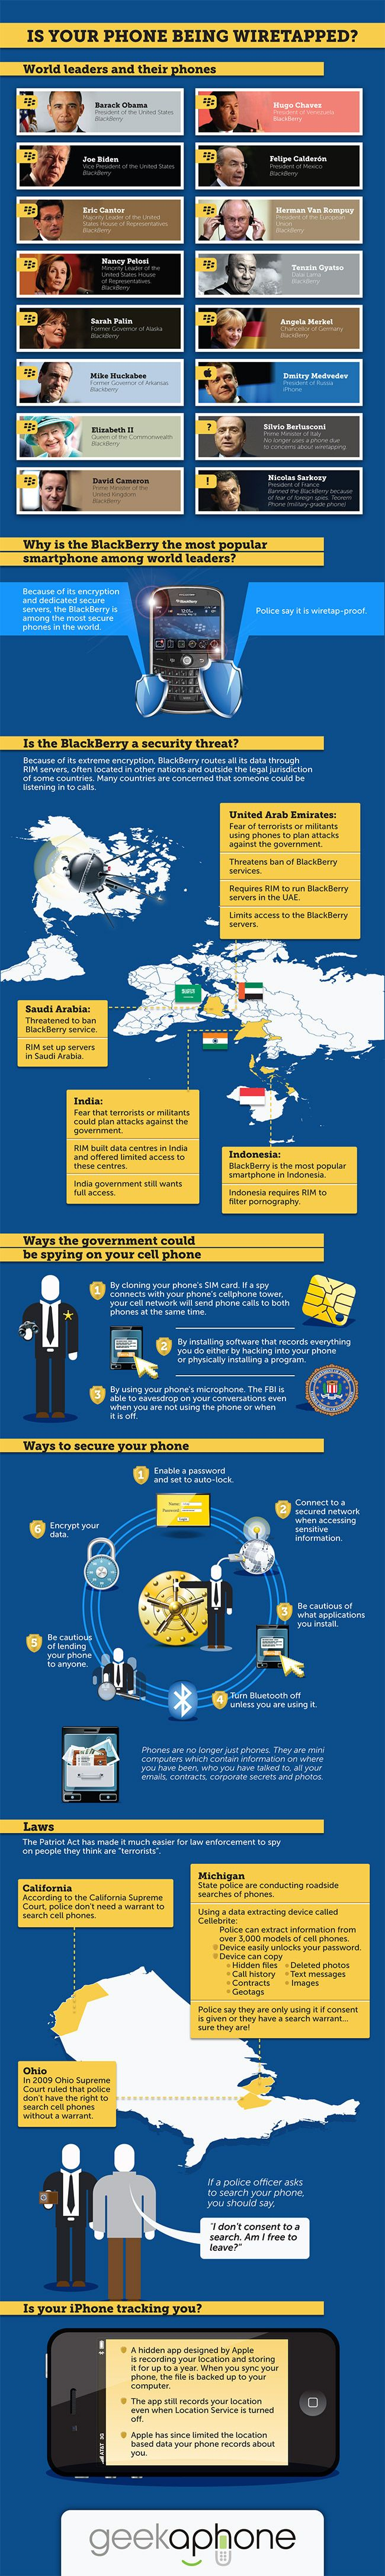 Cell Phone Wiretapping: Mobile Security Explained